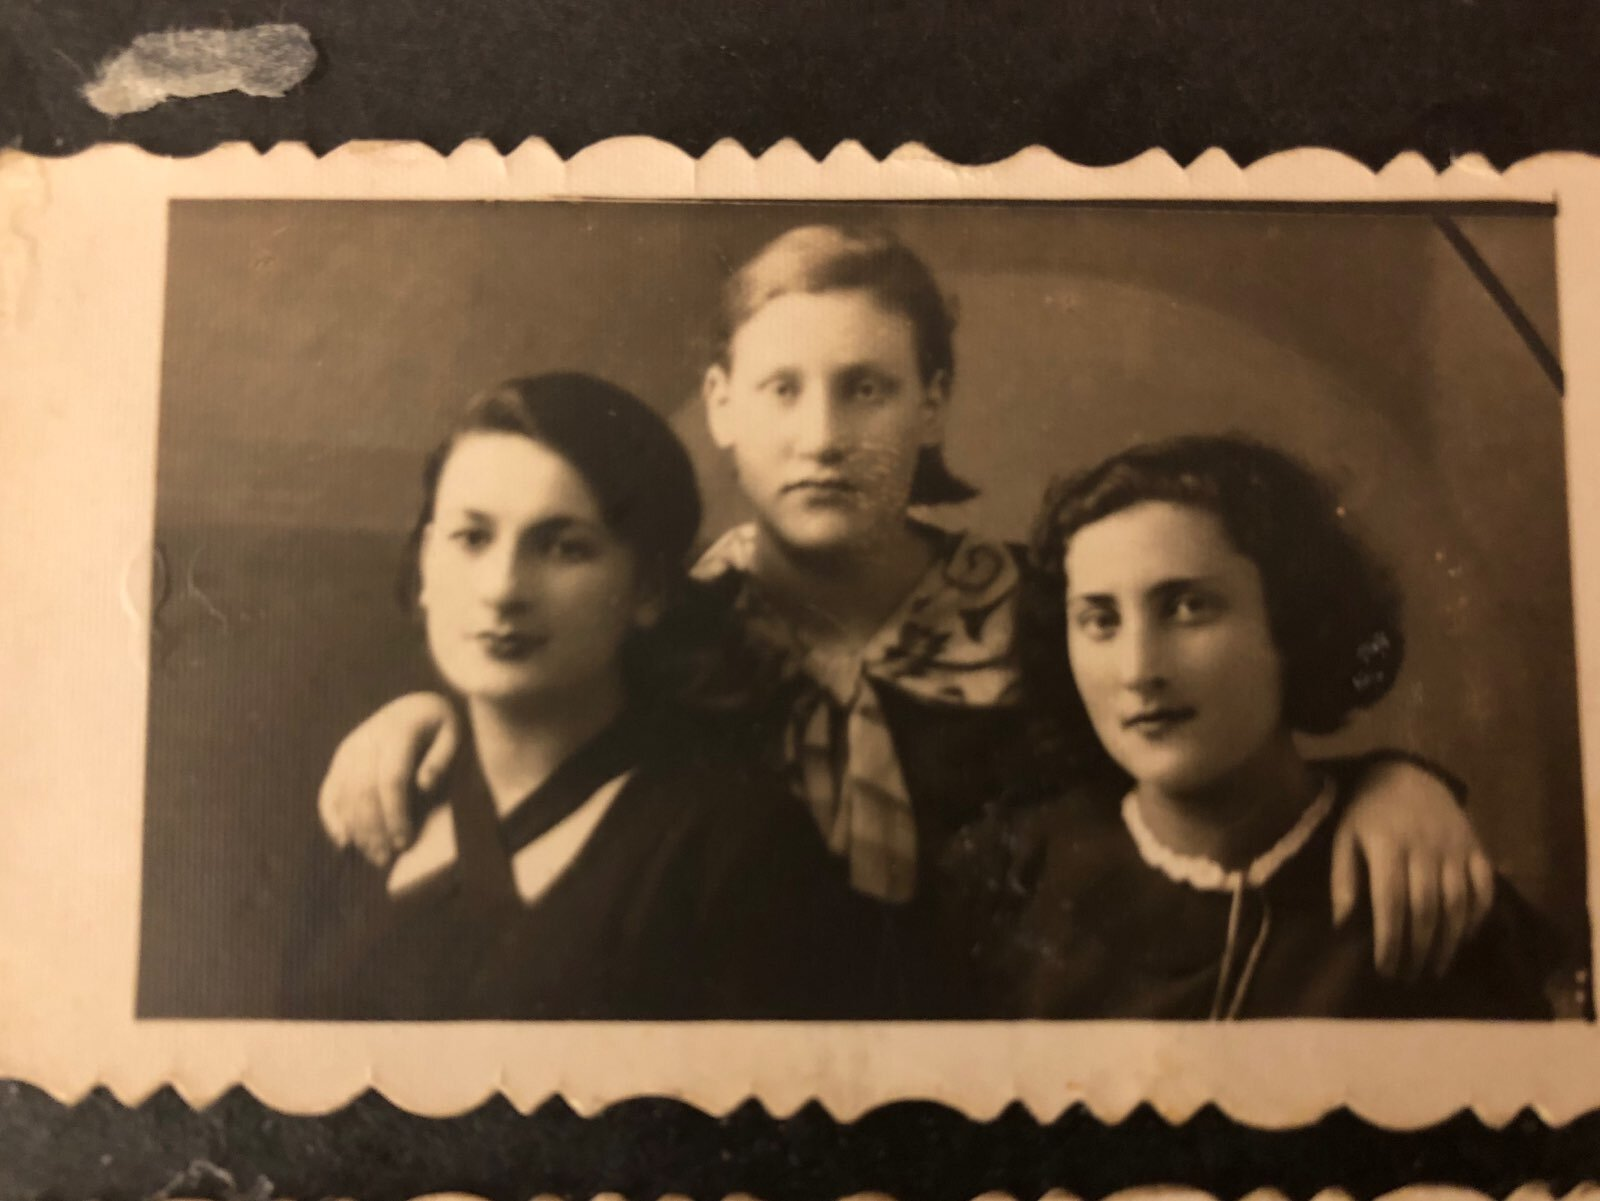 A photo from my grandmother's album. I don't know who they are. Could they be her sisters?